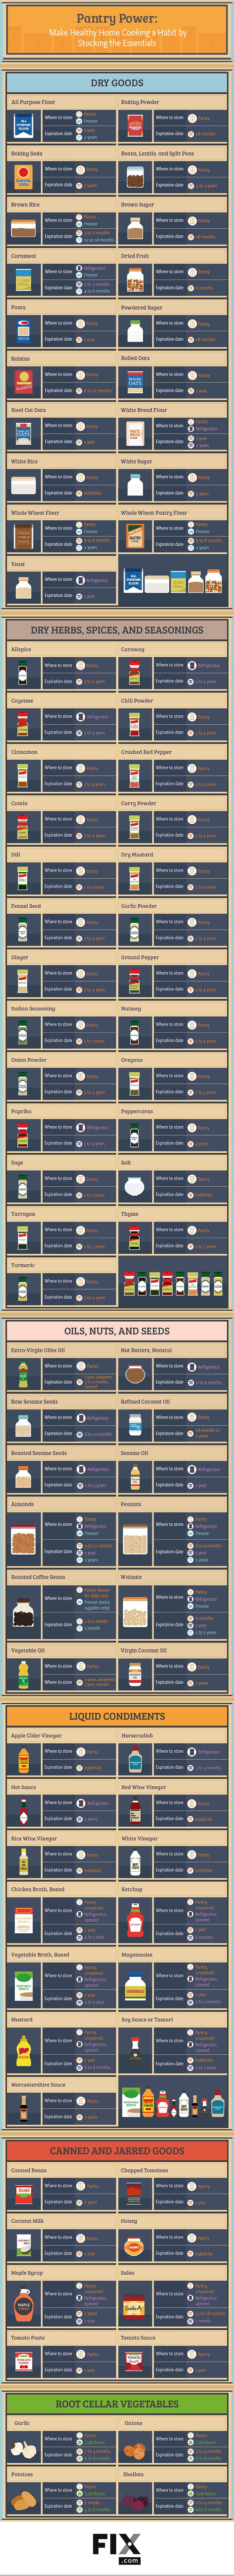 This Graphic Shows How to Keep Your Pantry Well Stocked (and When to Toss Things Out)